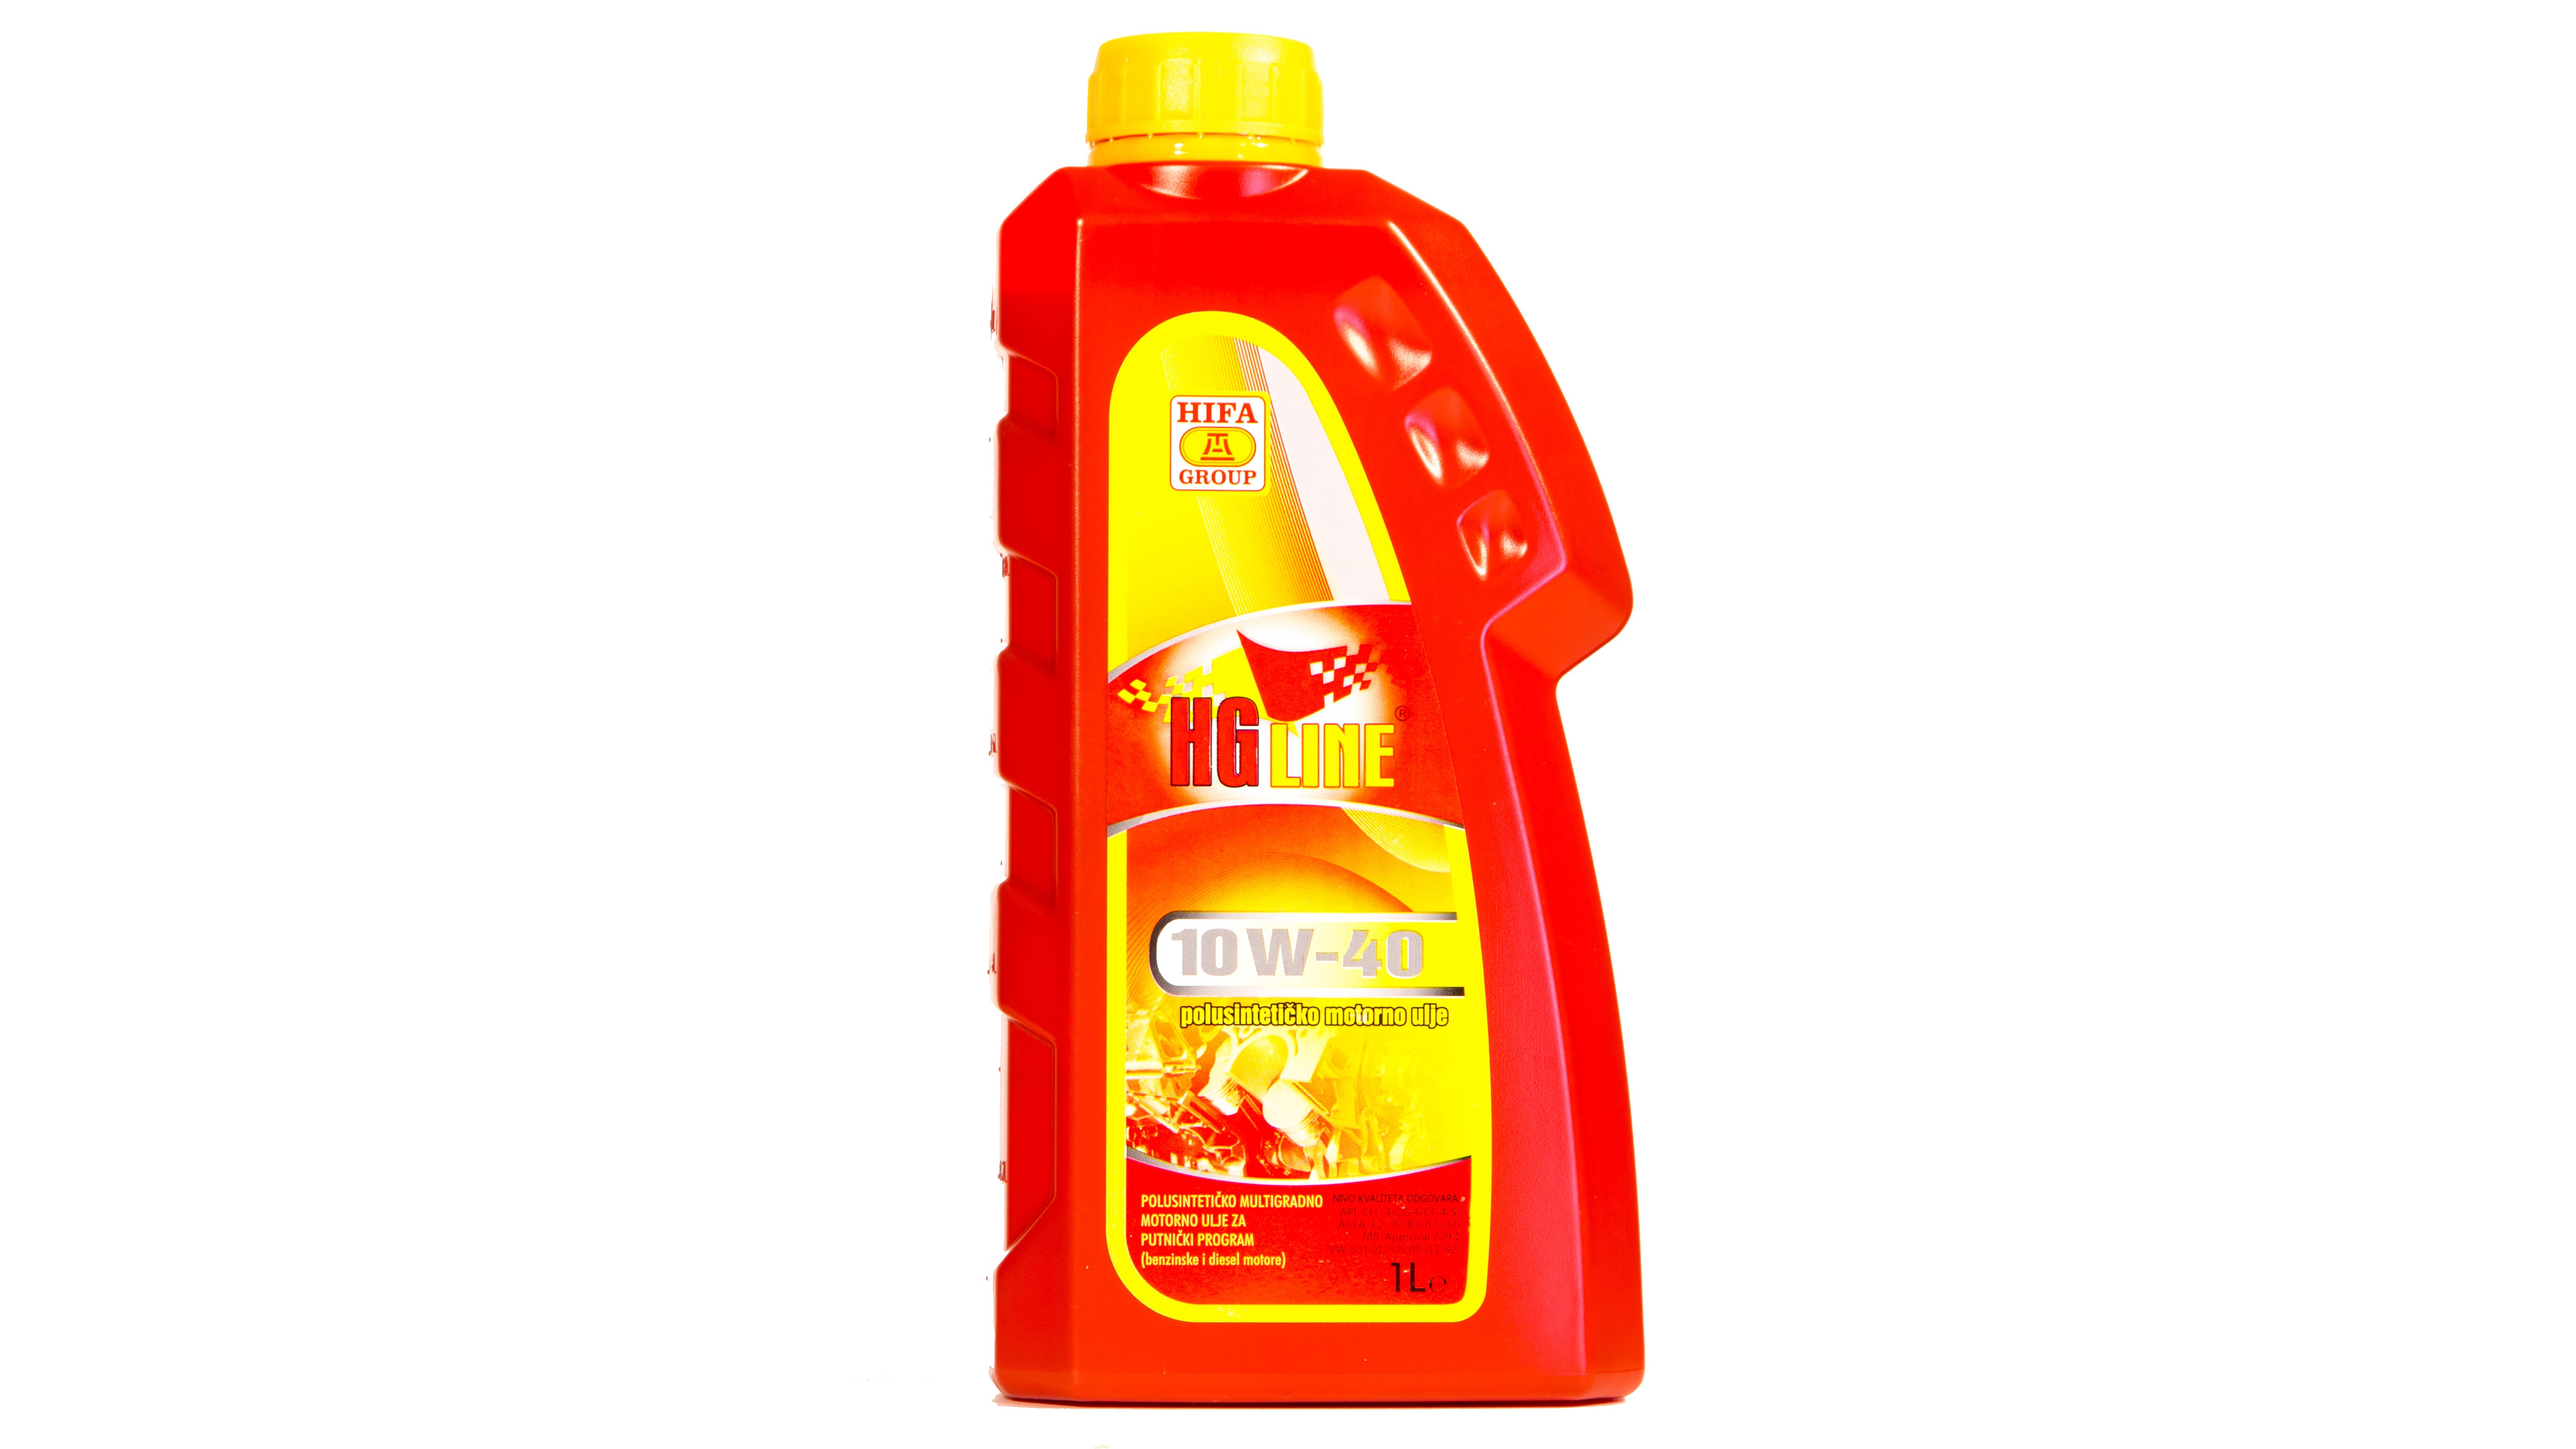 HGline 10W-40 -  Semi-synthetic multigrade engine oil